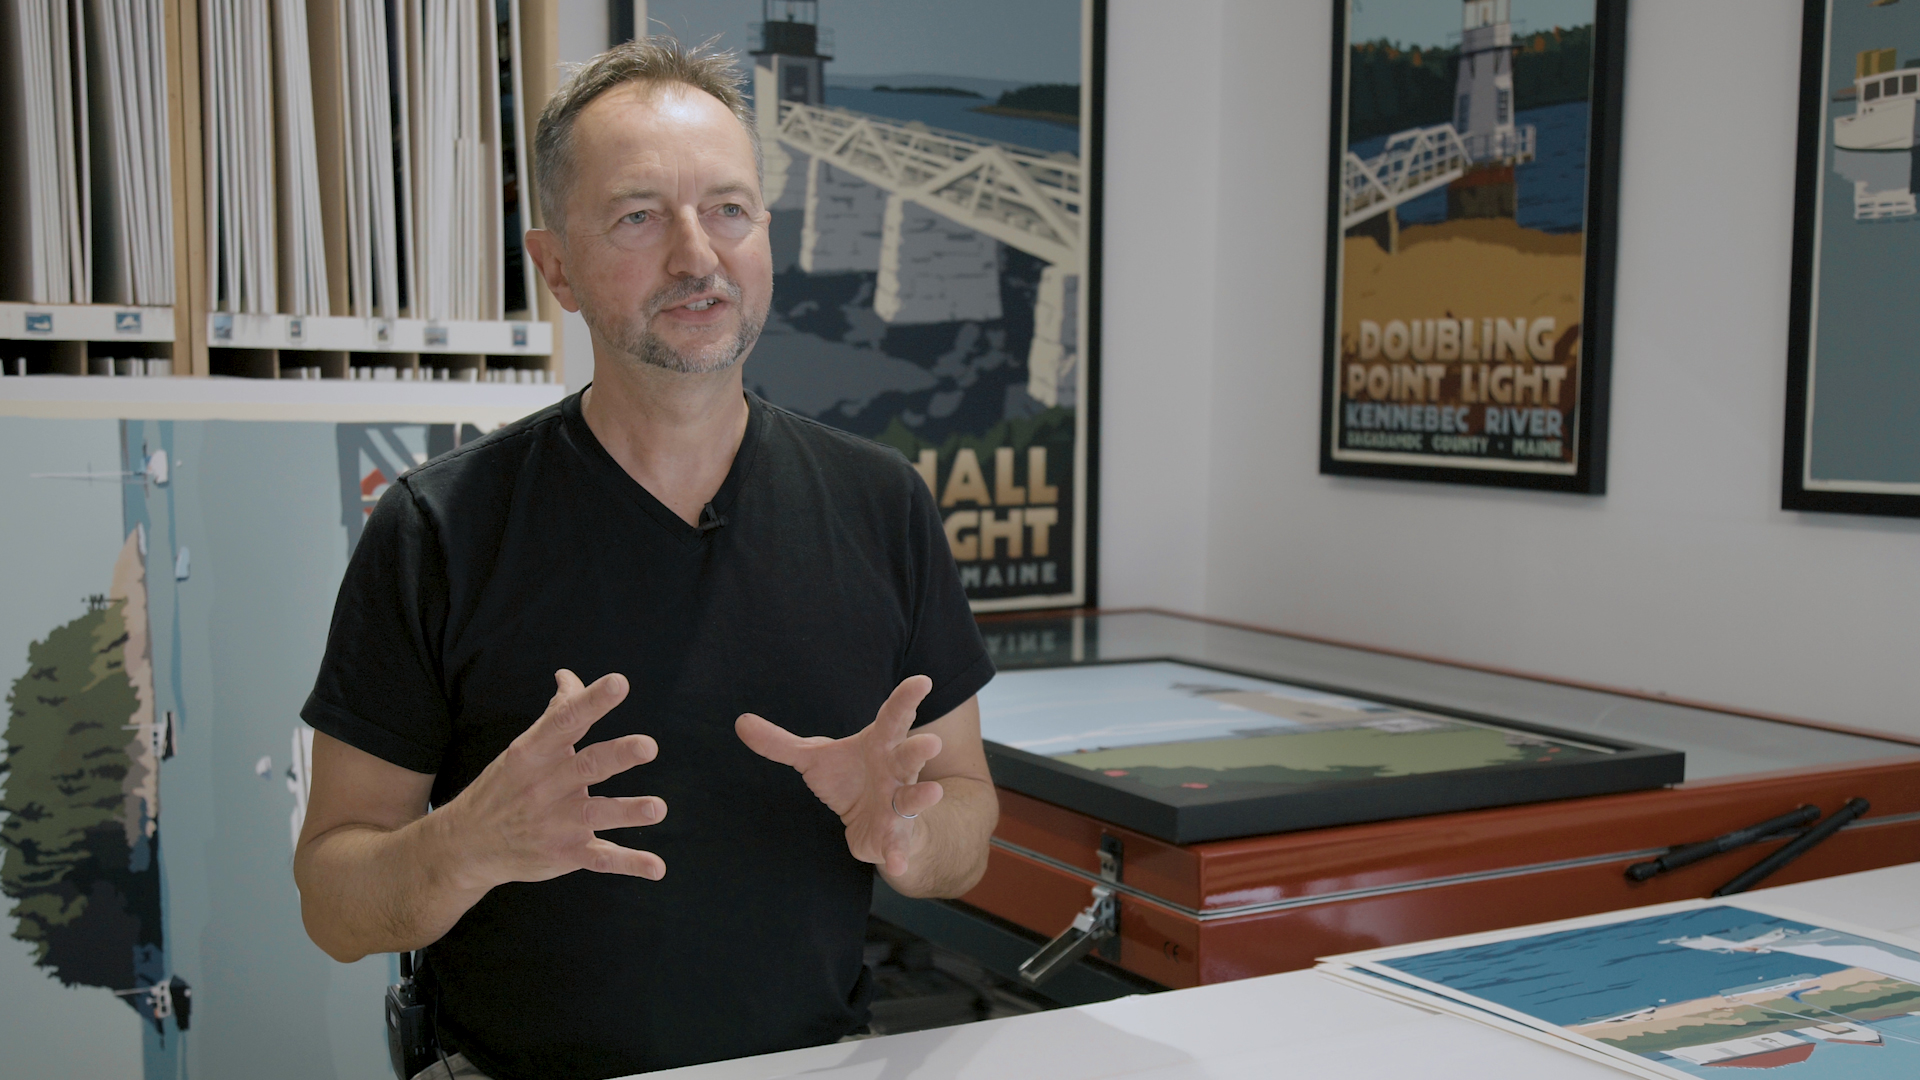 Interview with Artist Alan Claude - Alan Claude talks about his art and the life around lighthouses he sees today.